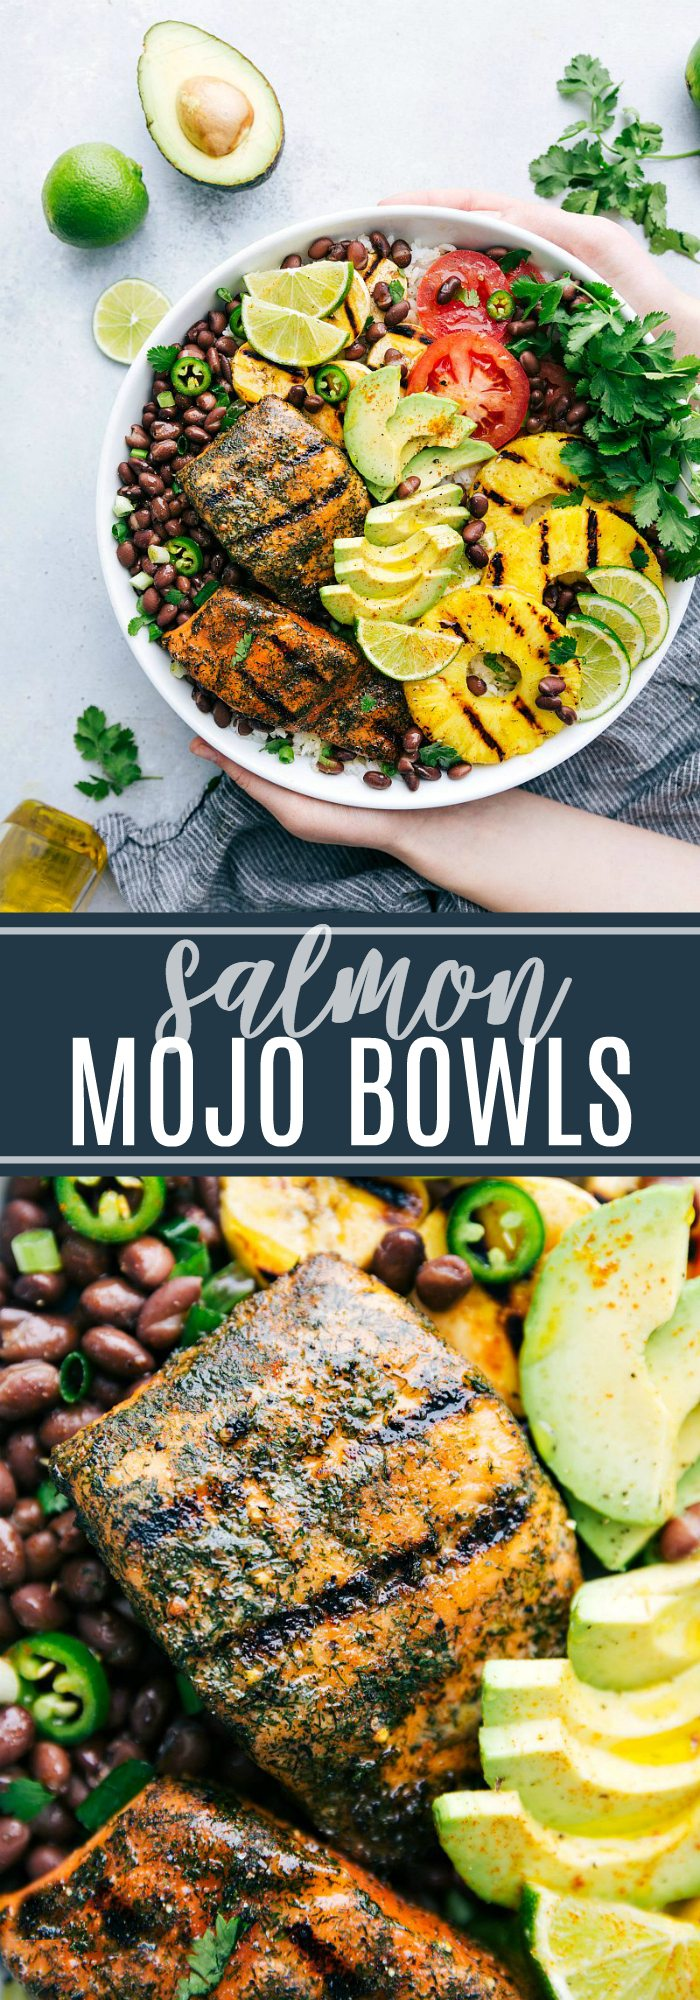 Delicious, healthy, and EASY Salmon Mojo Bowls with tons of fresh ingredients! via chelseasmessyapron.com #salmon #bowl #mojo #cuban #bowls #dinner #healthy #easy #quick #kidfriendly #plantain #tomato #pineapple #avocado #lime